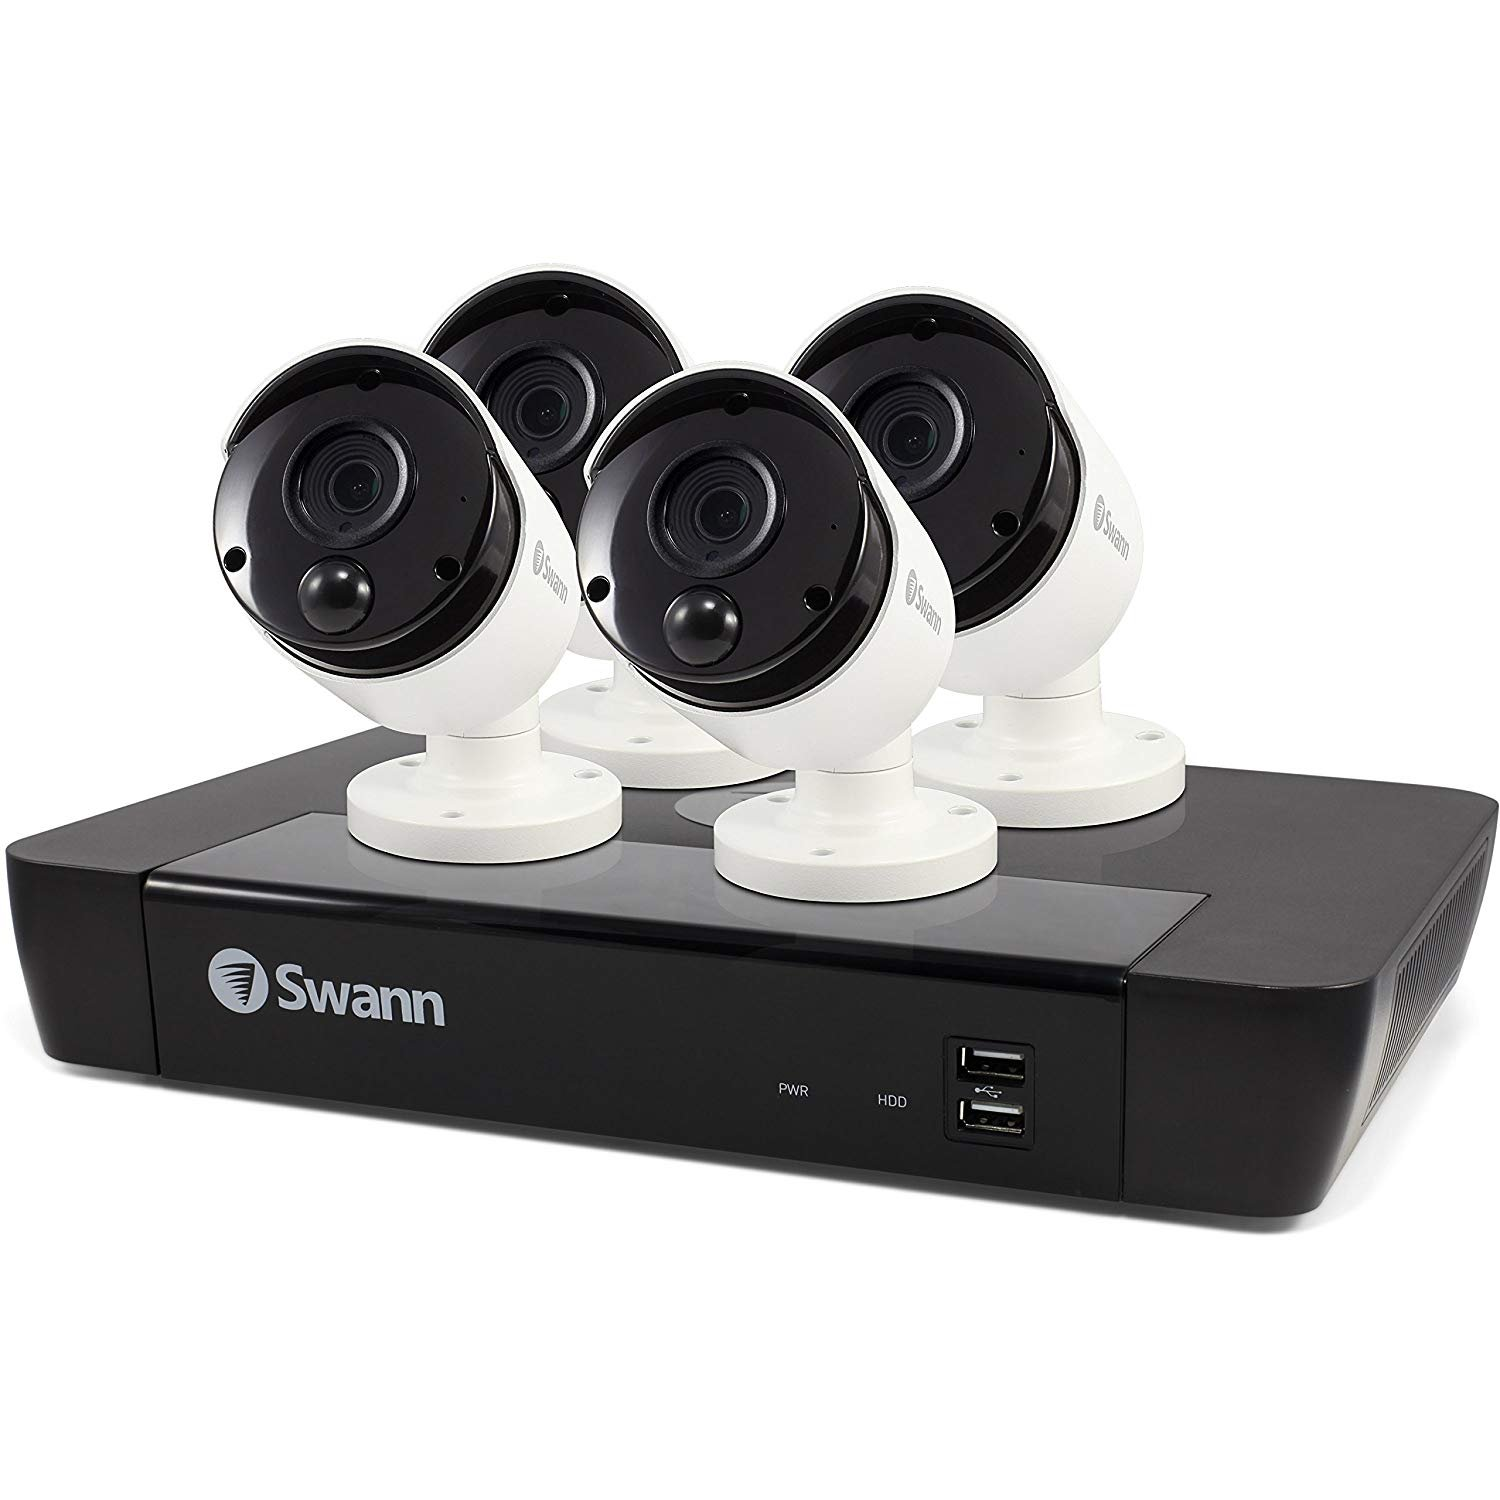 Swann 8 Channel Security System: 5MP Super HD NVR-8580 with 2TB HDD Thermal Sensing Cameras